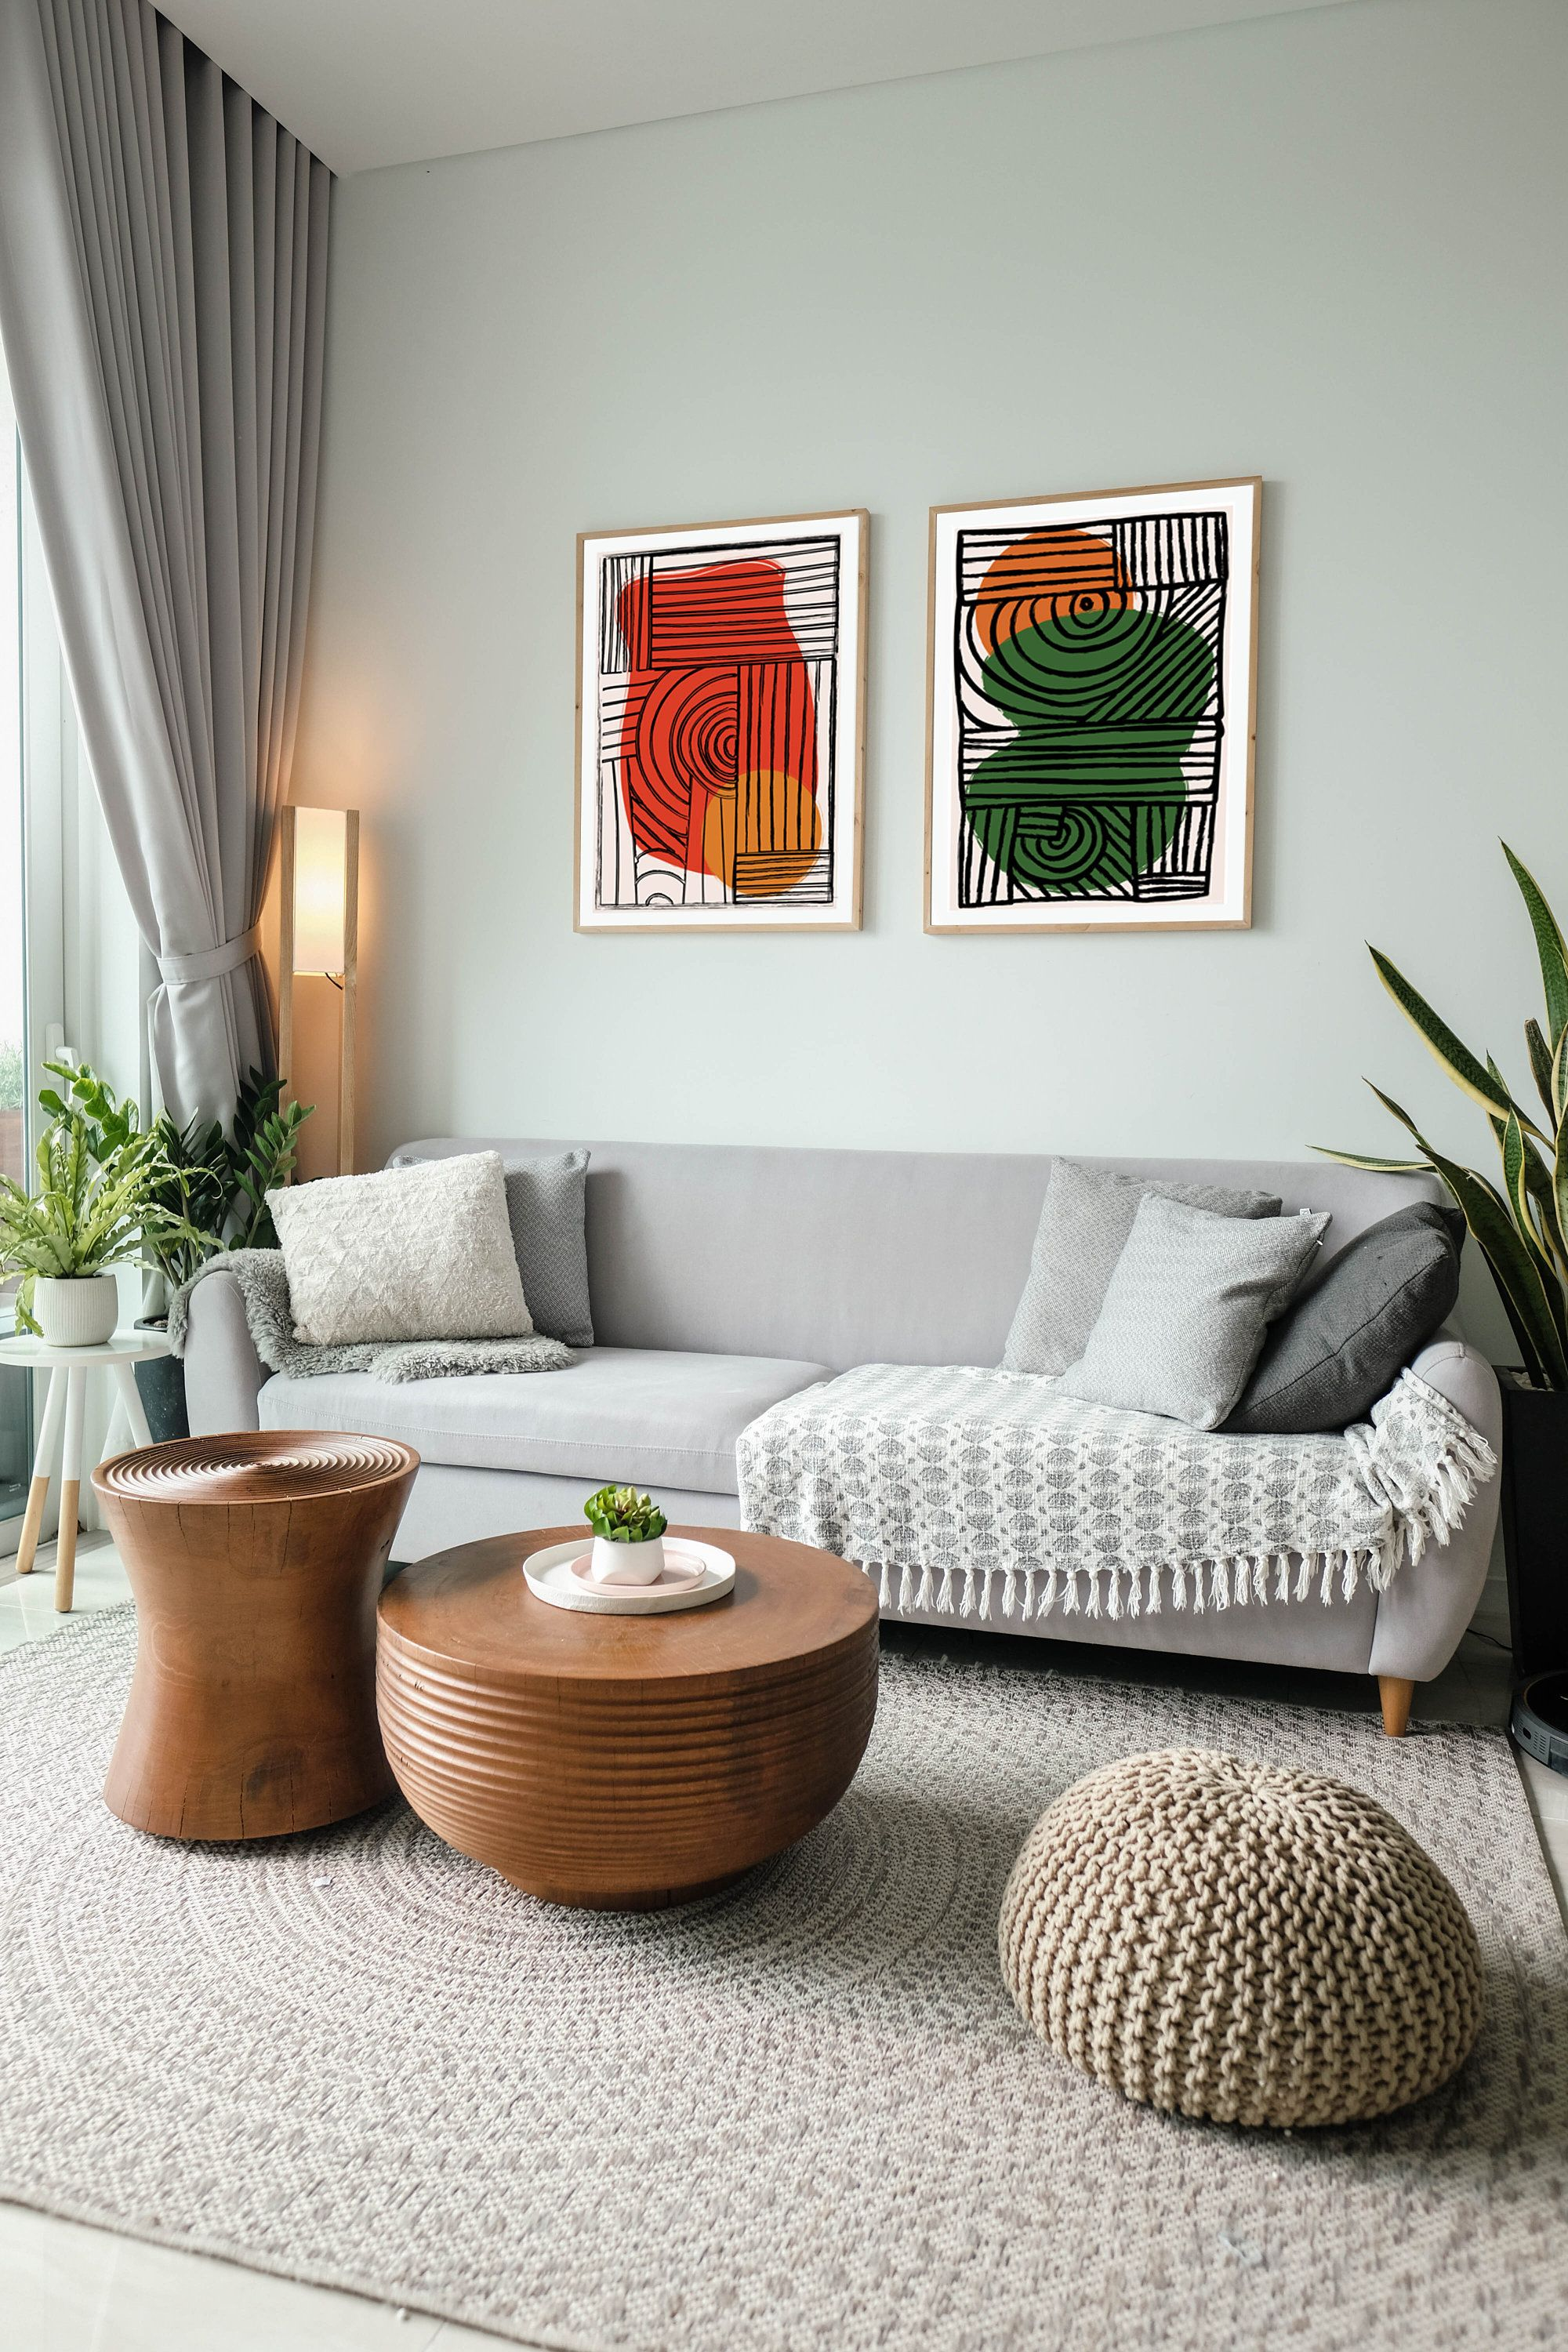 Large Digital Geometric Minimal Abstract Art Instant Etsy In 2020 Living Room Decor Apartment Boho Living Room Living Room Designs